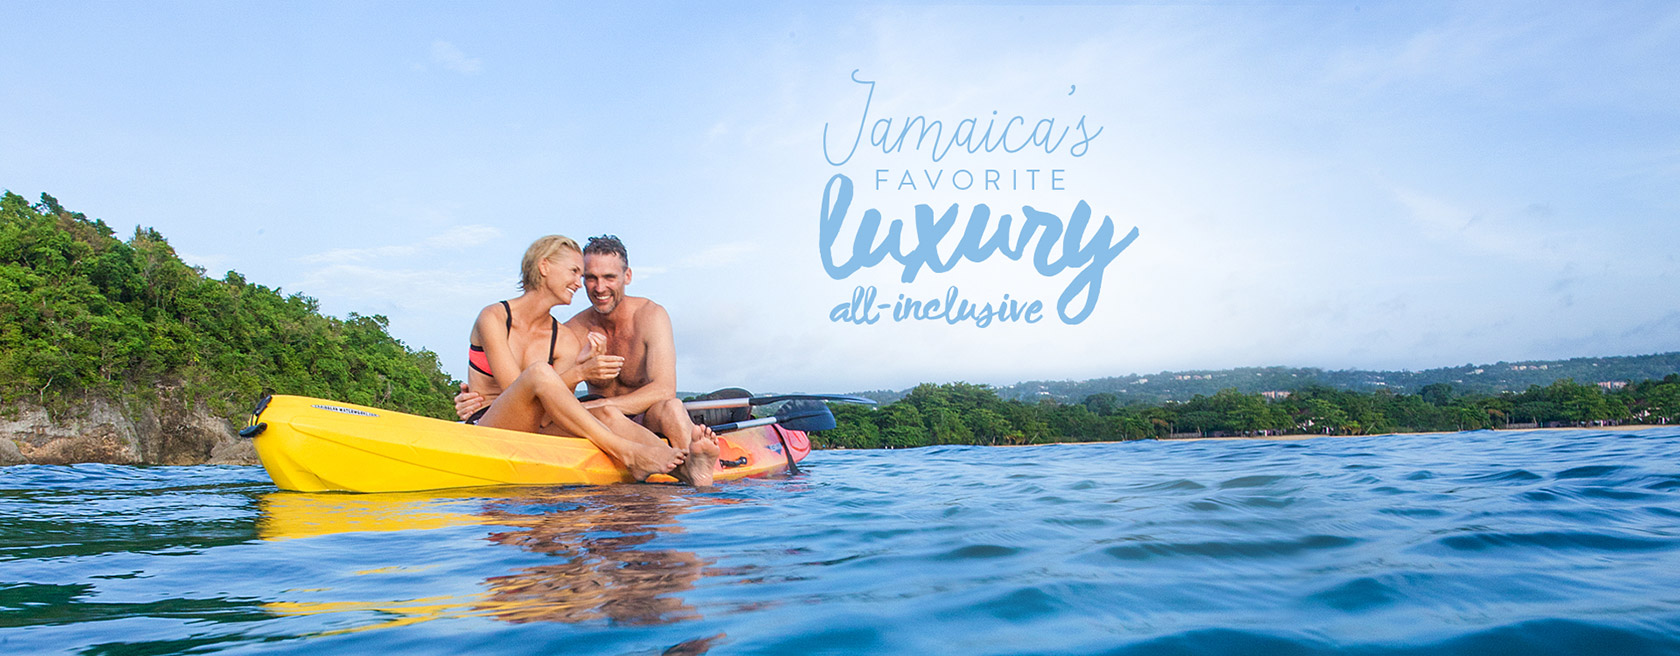 3-Couples_Main-All-Inclusive-Jamaica-copy-56d6fabbae131-573bc6bd5707e.jpg